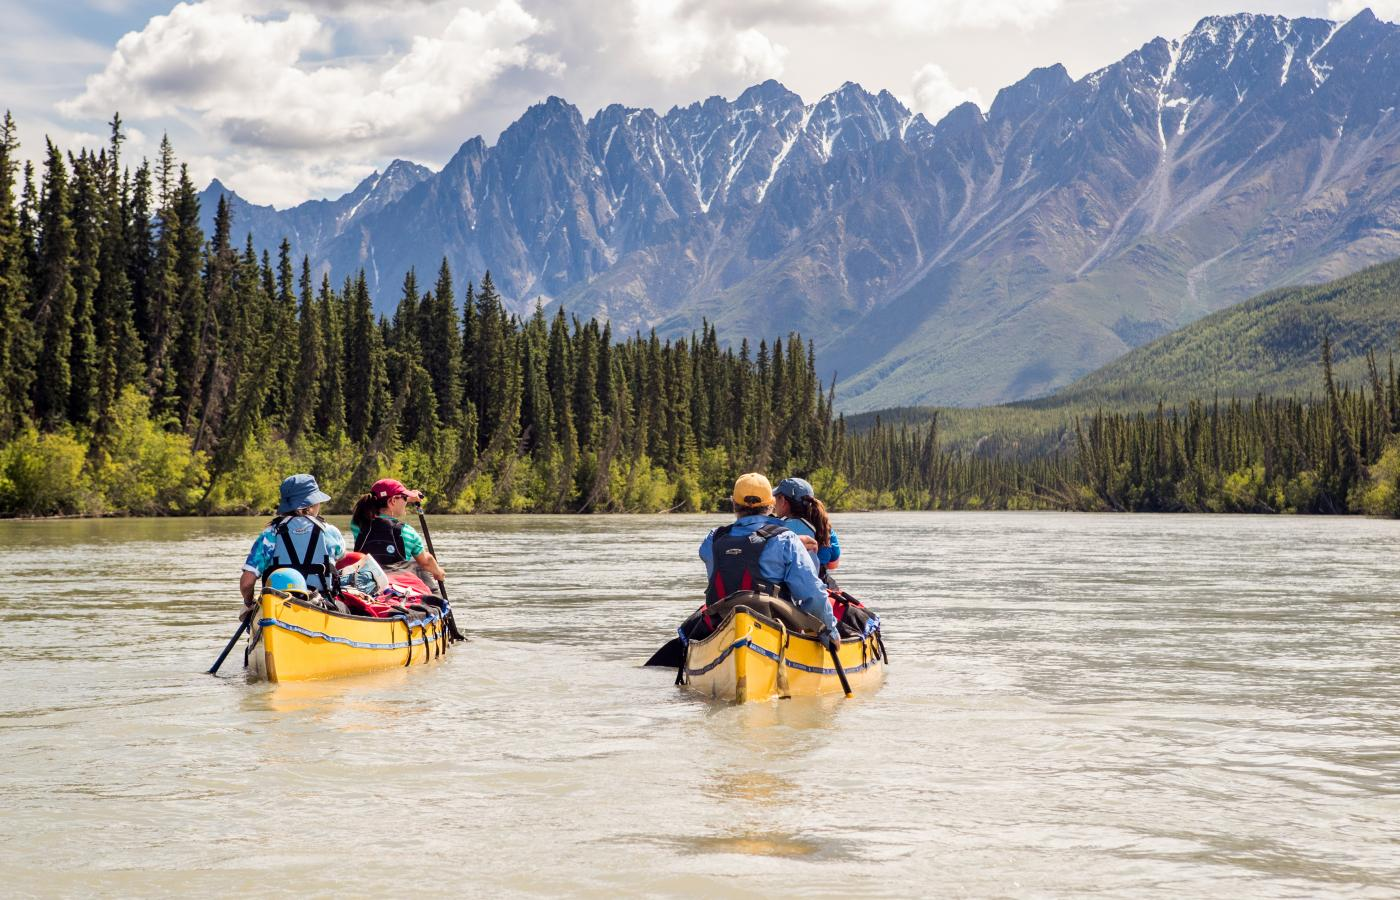 Canoeing on a serene South Nahanni River with mountains in the background in Canada's Northwest Territories